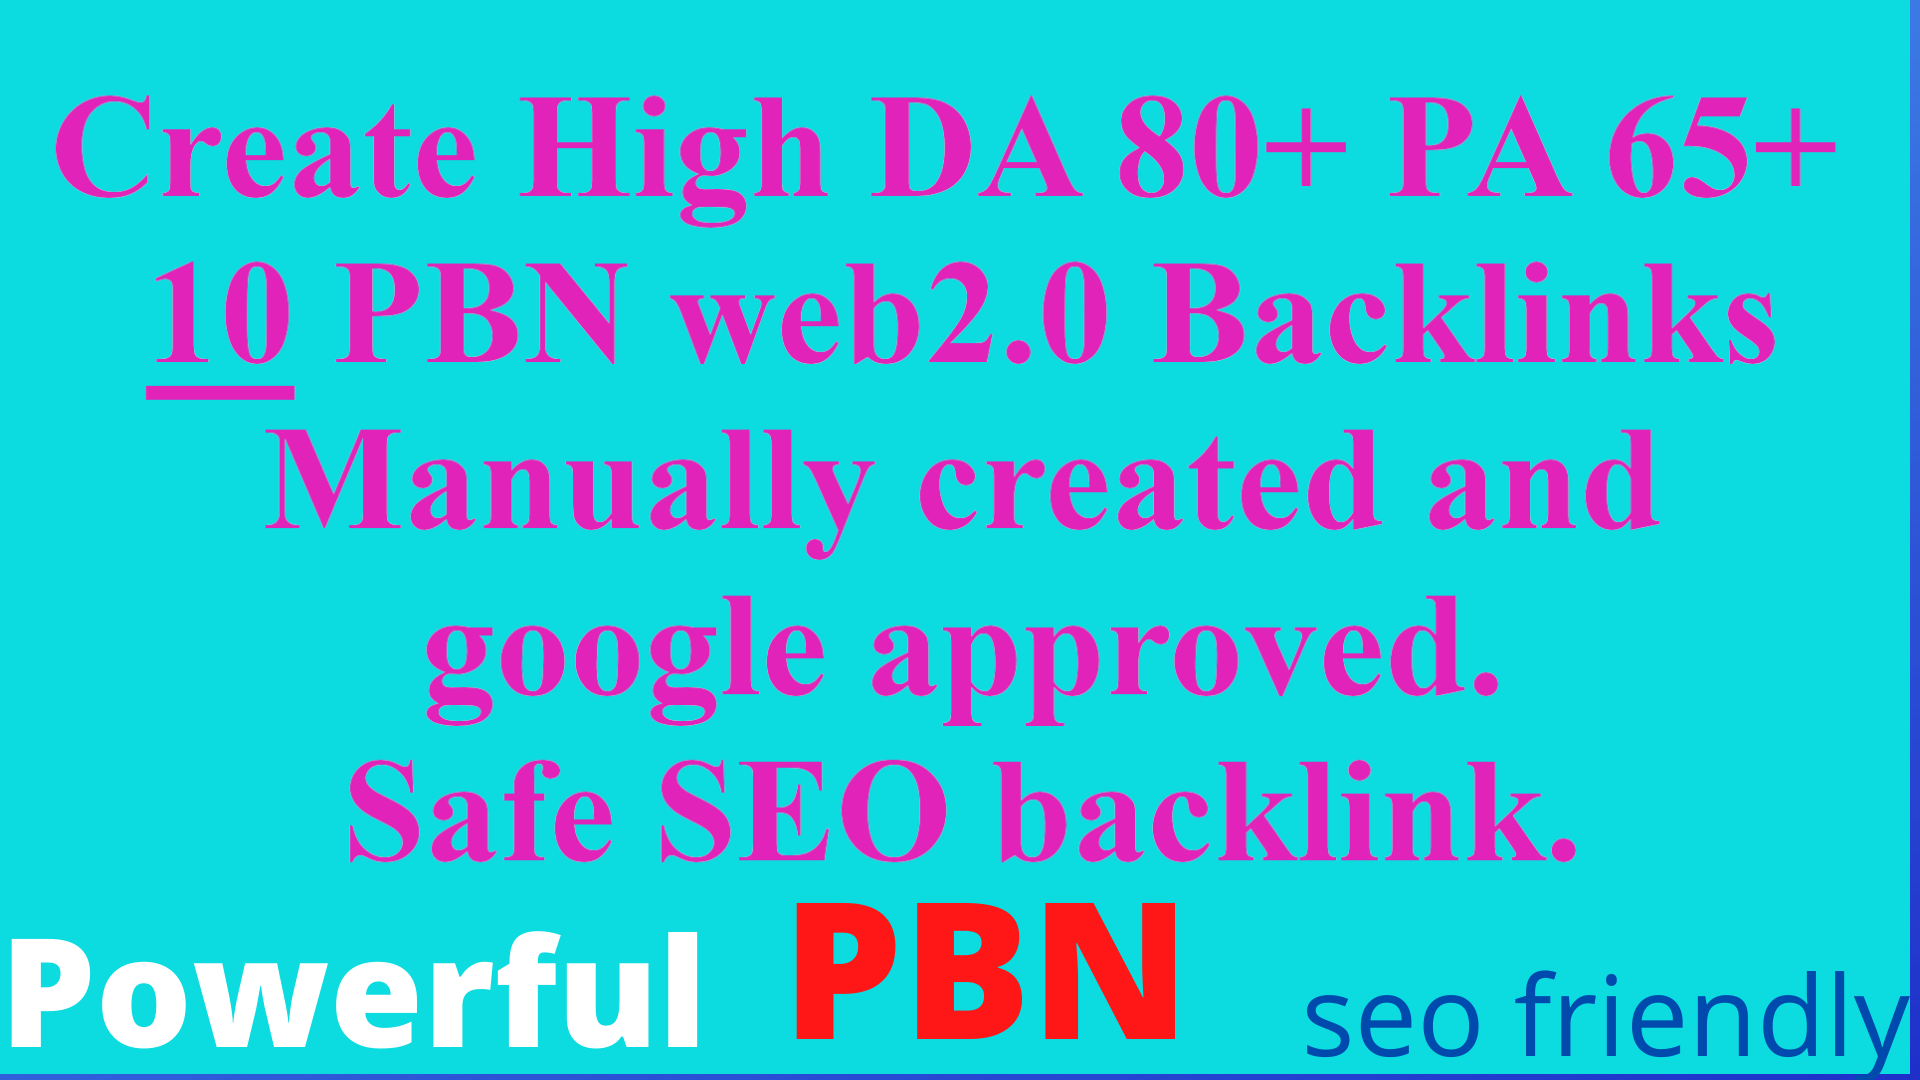 we will build Web 2.0 permanent 10 PBN Unique Sites DA 80+ PA 65+